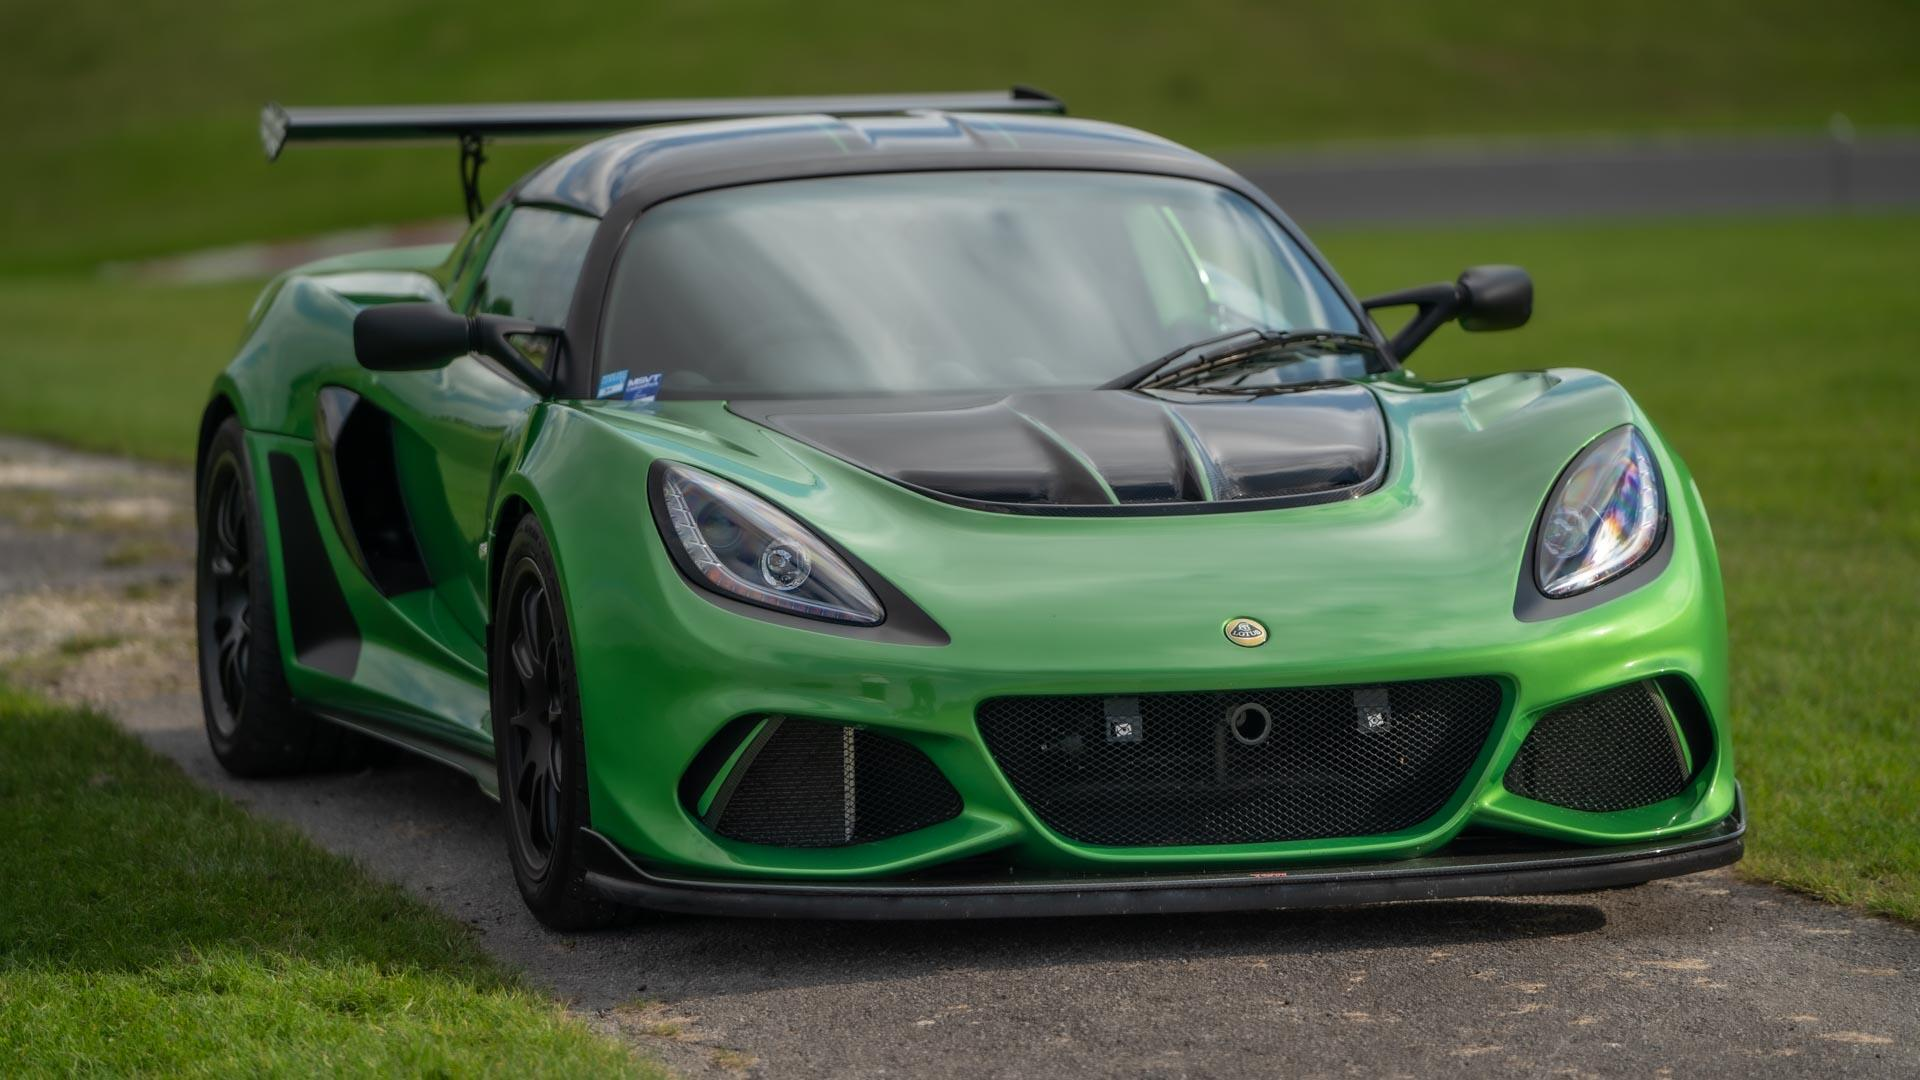 Video: Lotus Exige Cup 430 and Cadwell Park race circuit are a perfect match